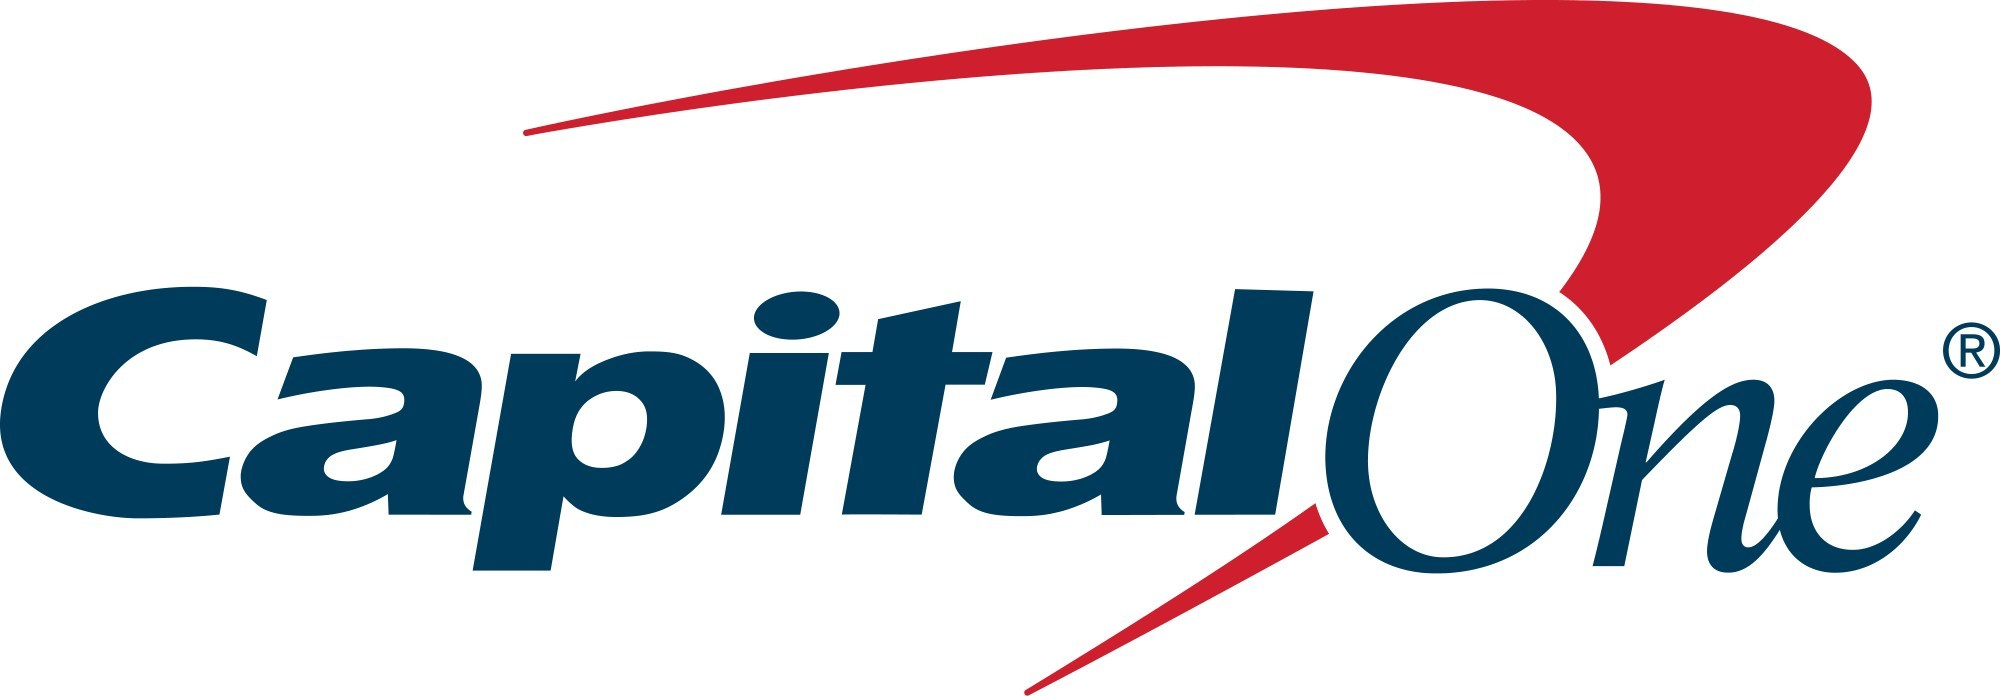 Capital One Financial Corporation to Webcast Conference Call on Fourth Quarter 2020 Earnings